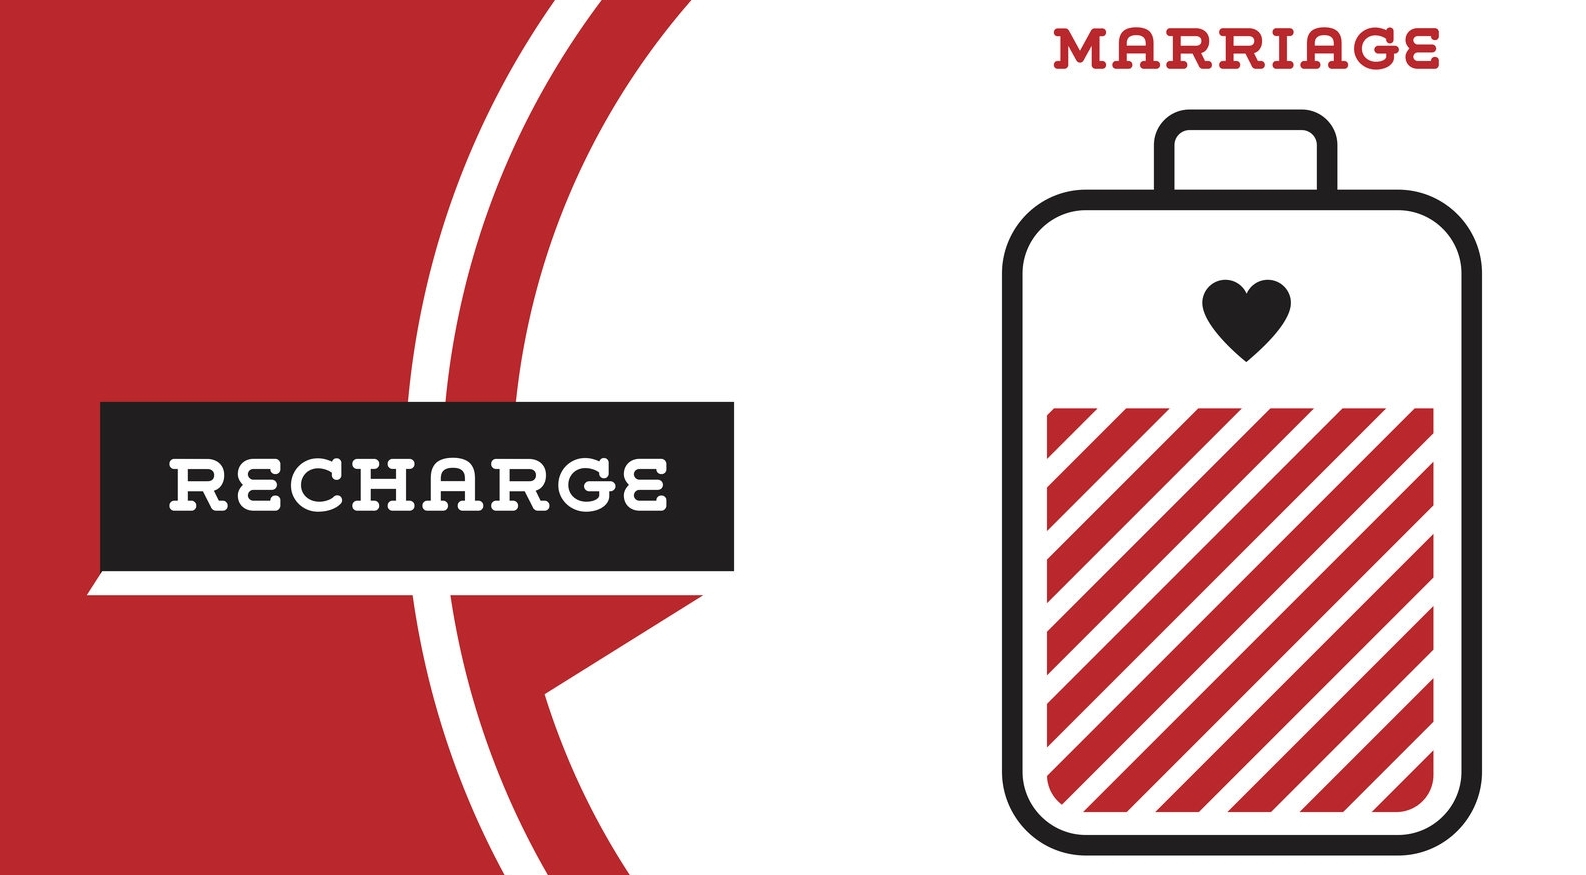 RECHARGE YOUR MARRIAGE CONFERENCE